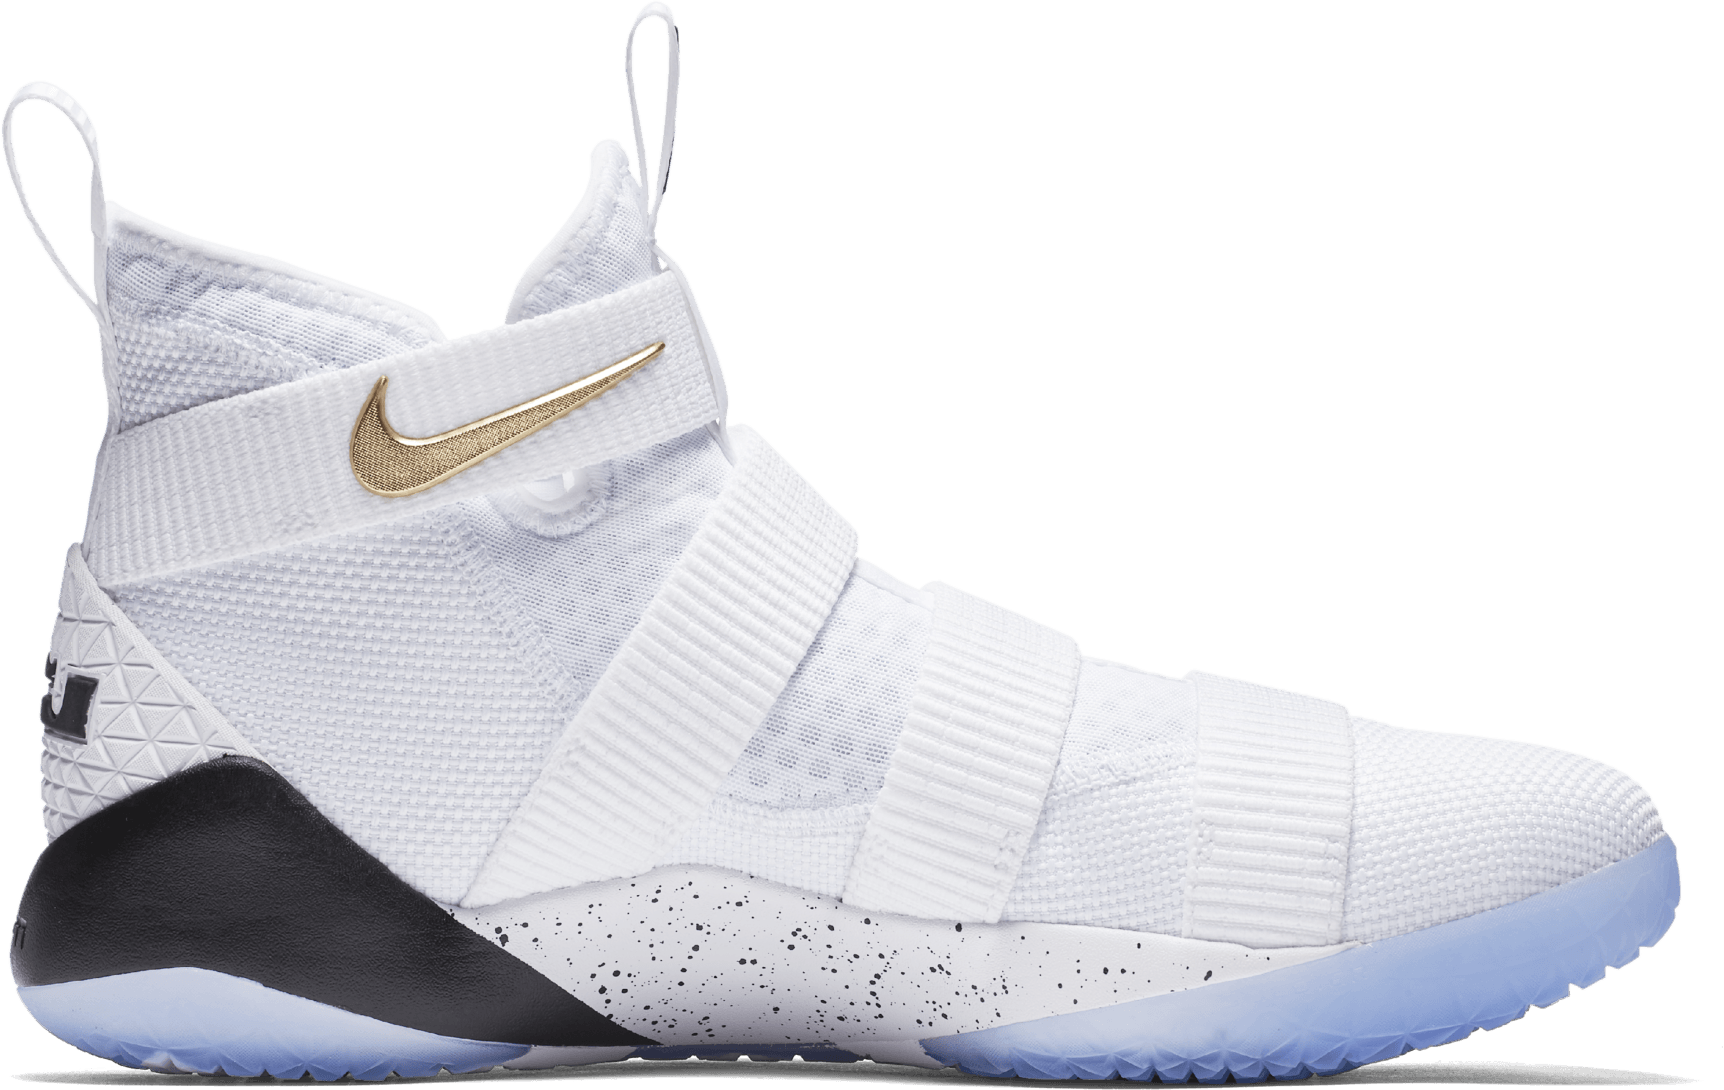 Nike Lebron Soldier 11 Performance Review